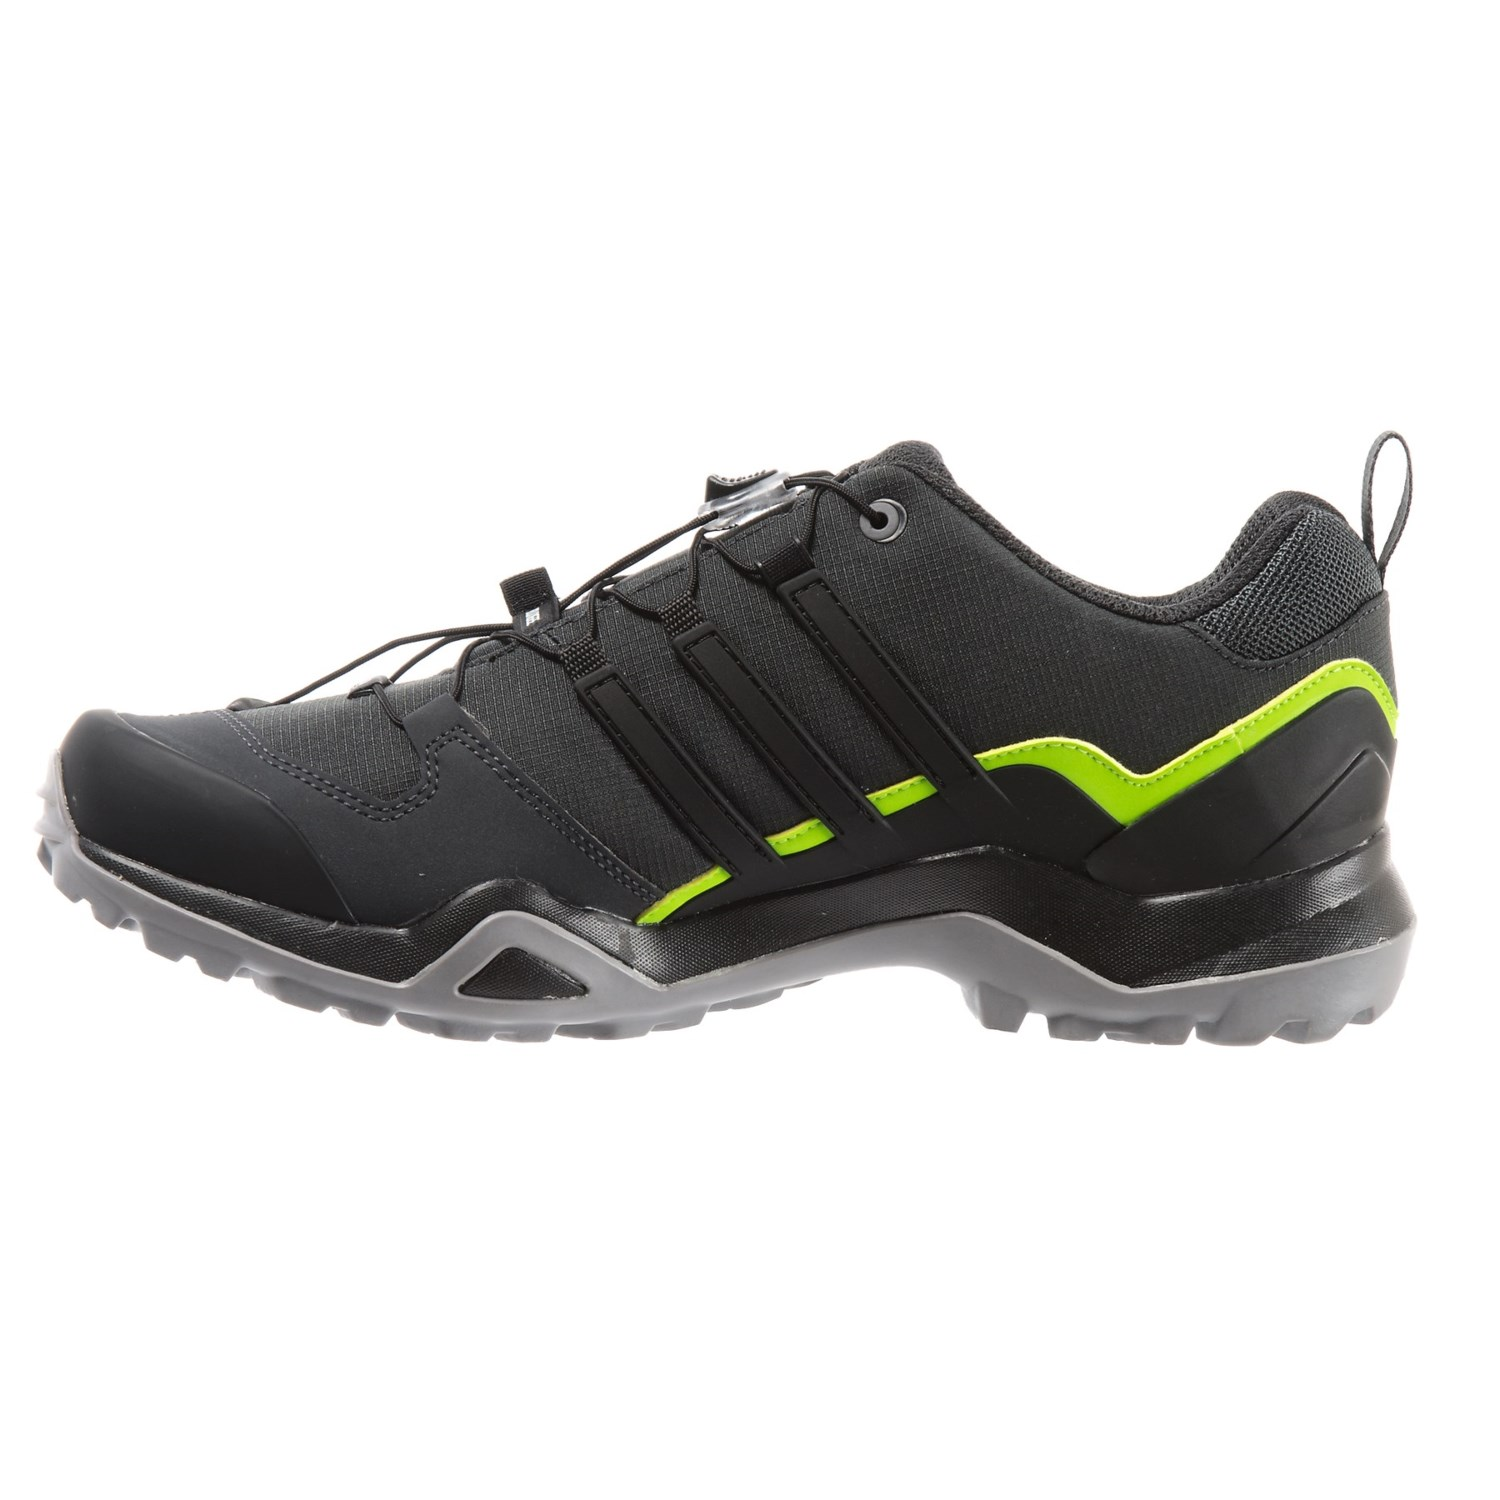 baa3b4f179dad adidas Terrex Swift R2 Hiking Shoes (For Men) - Save 39%